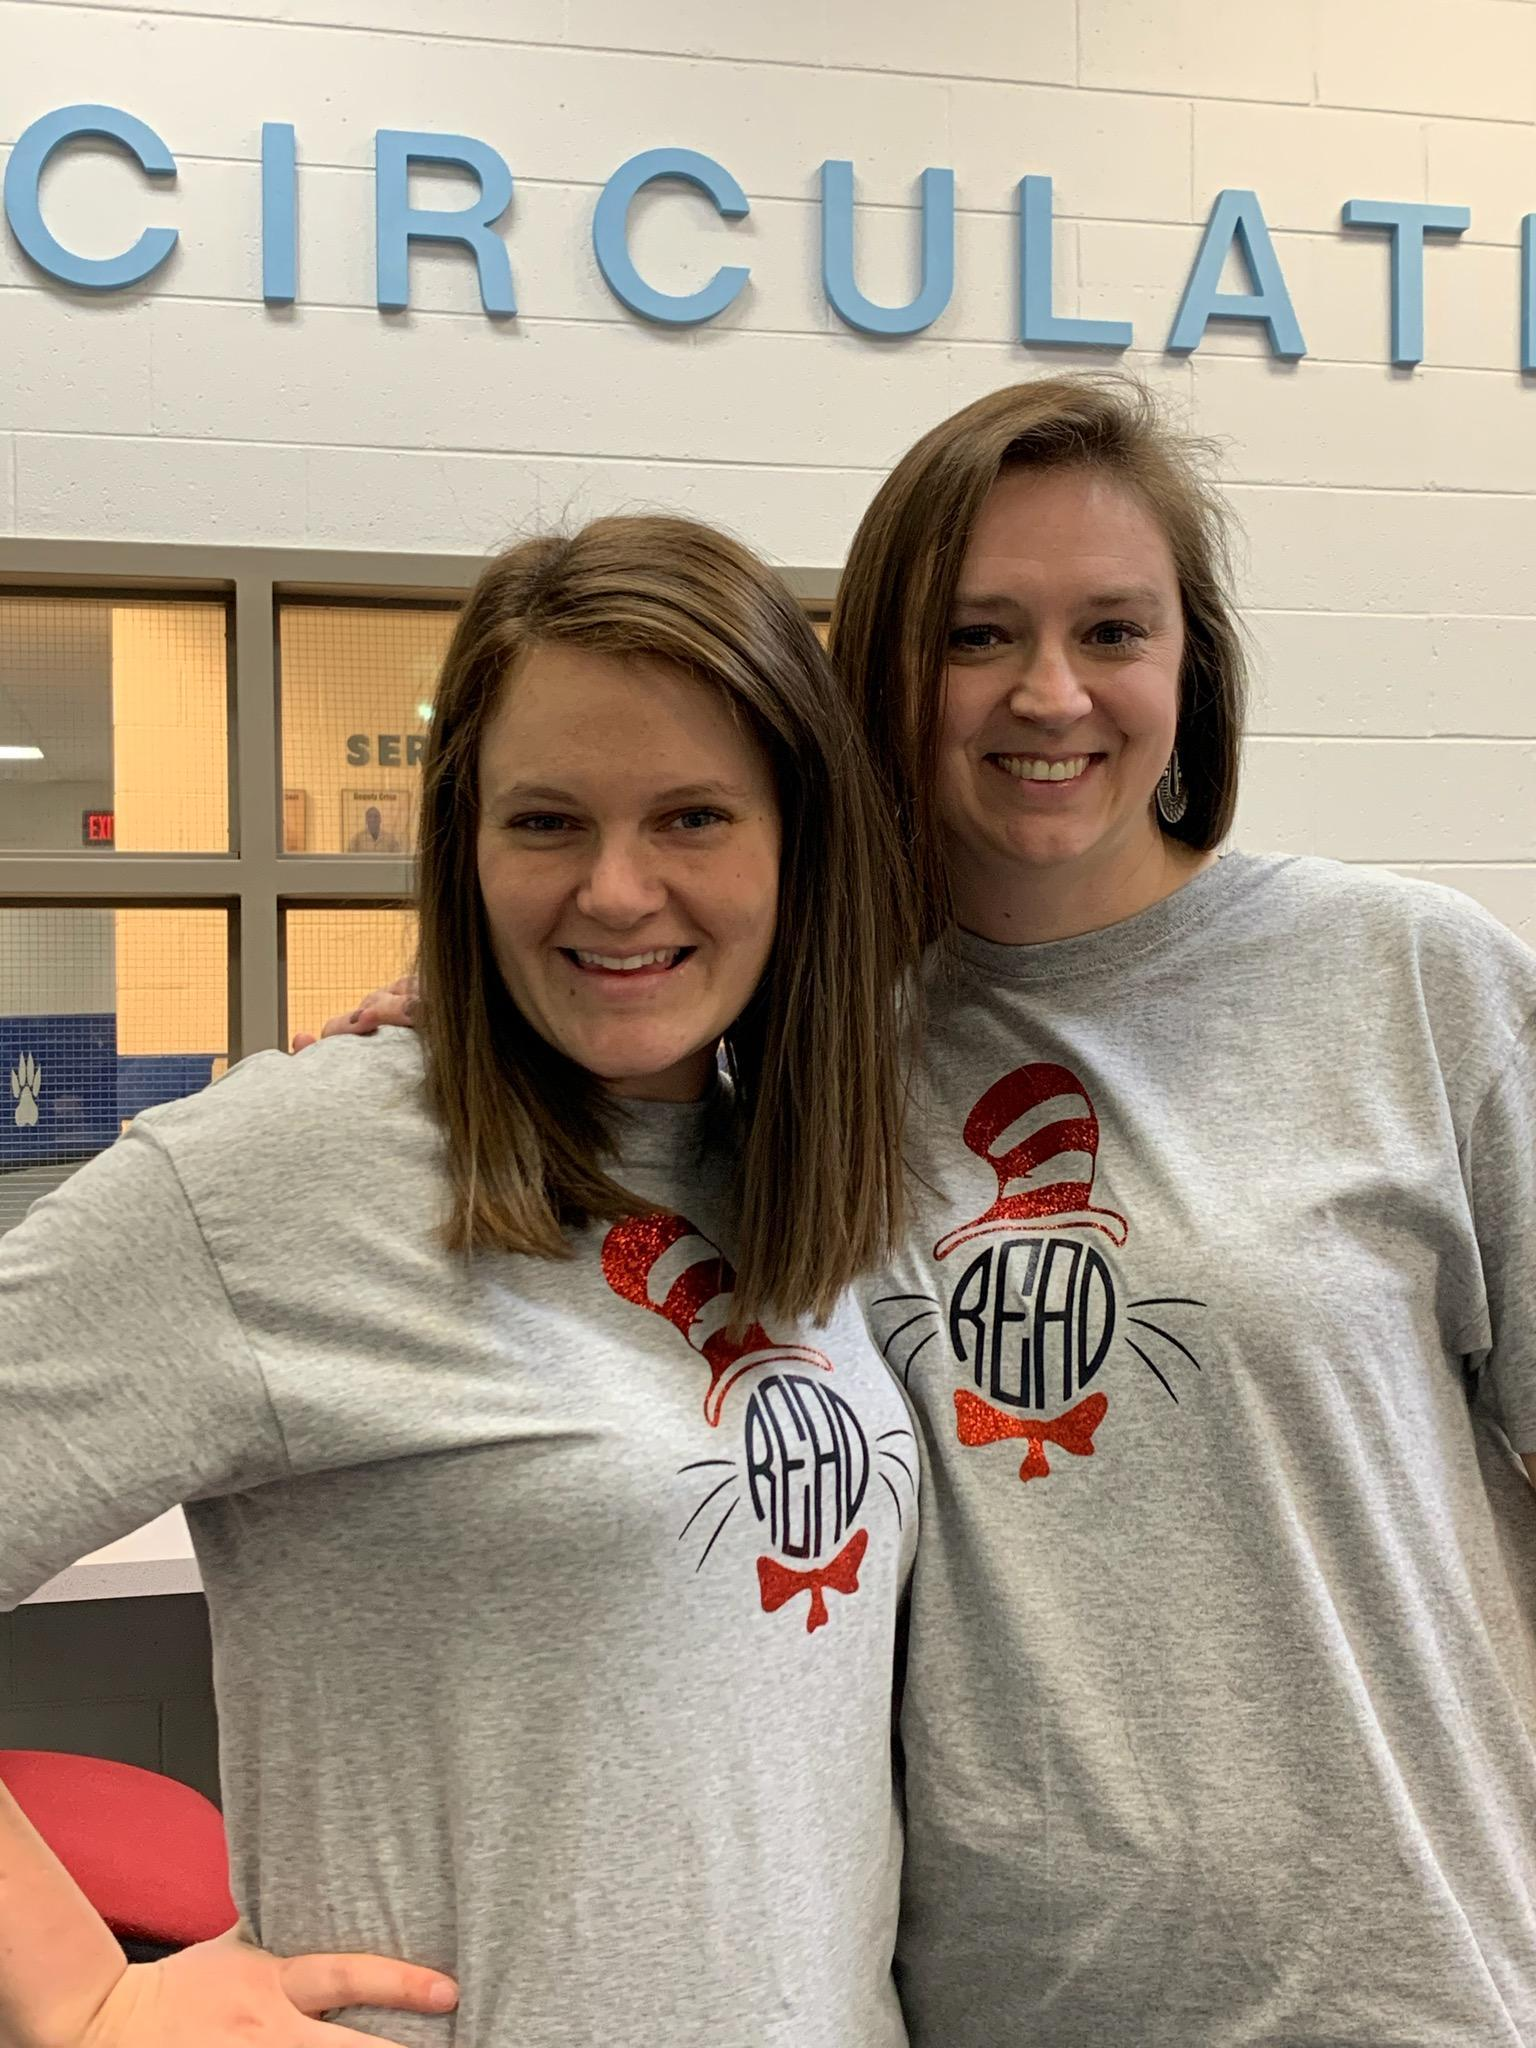 We love our new shirts!